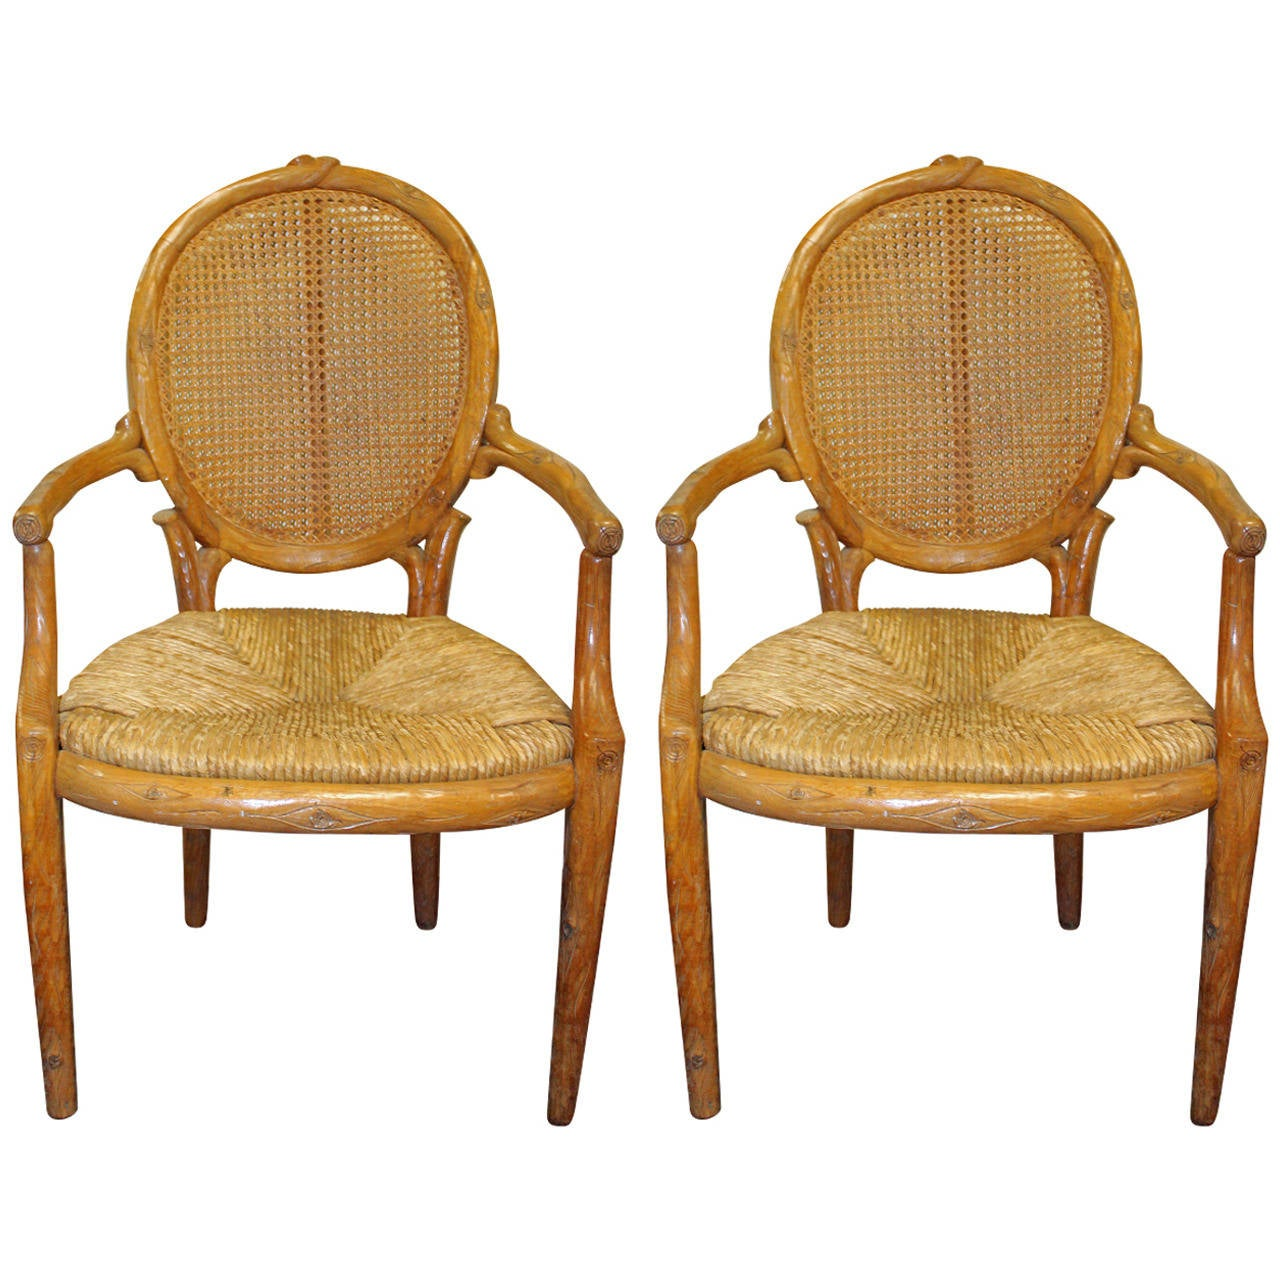 Pair of italian carved faux bois dining chairs at 1stdibs for Chair in italian